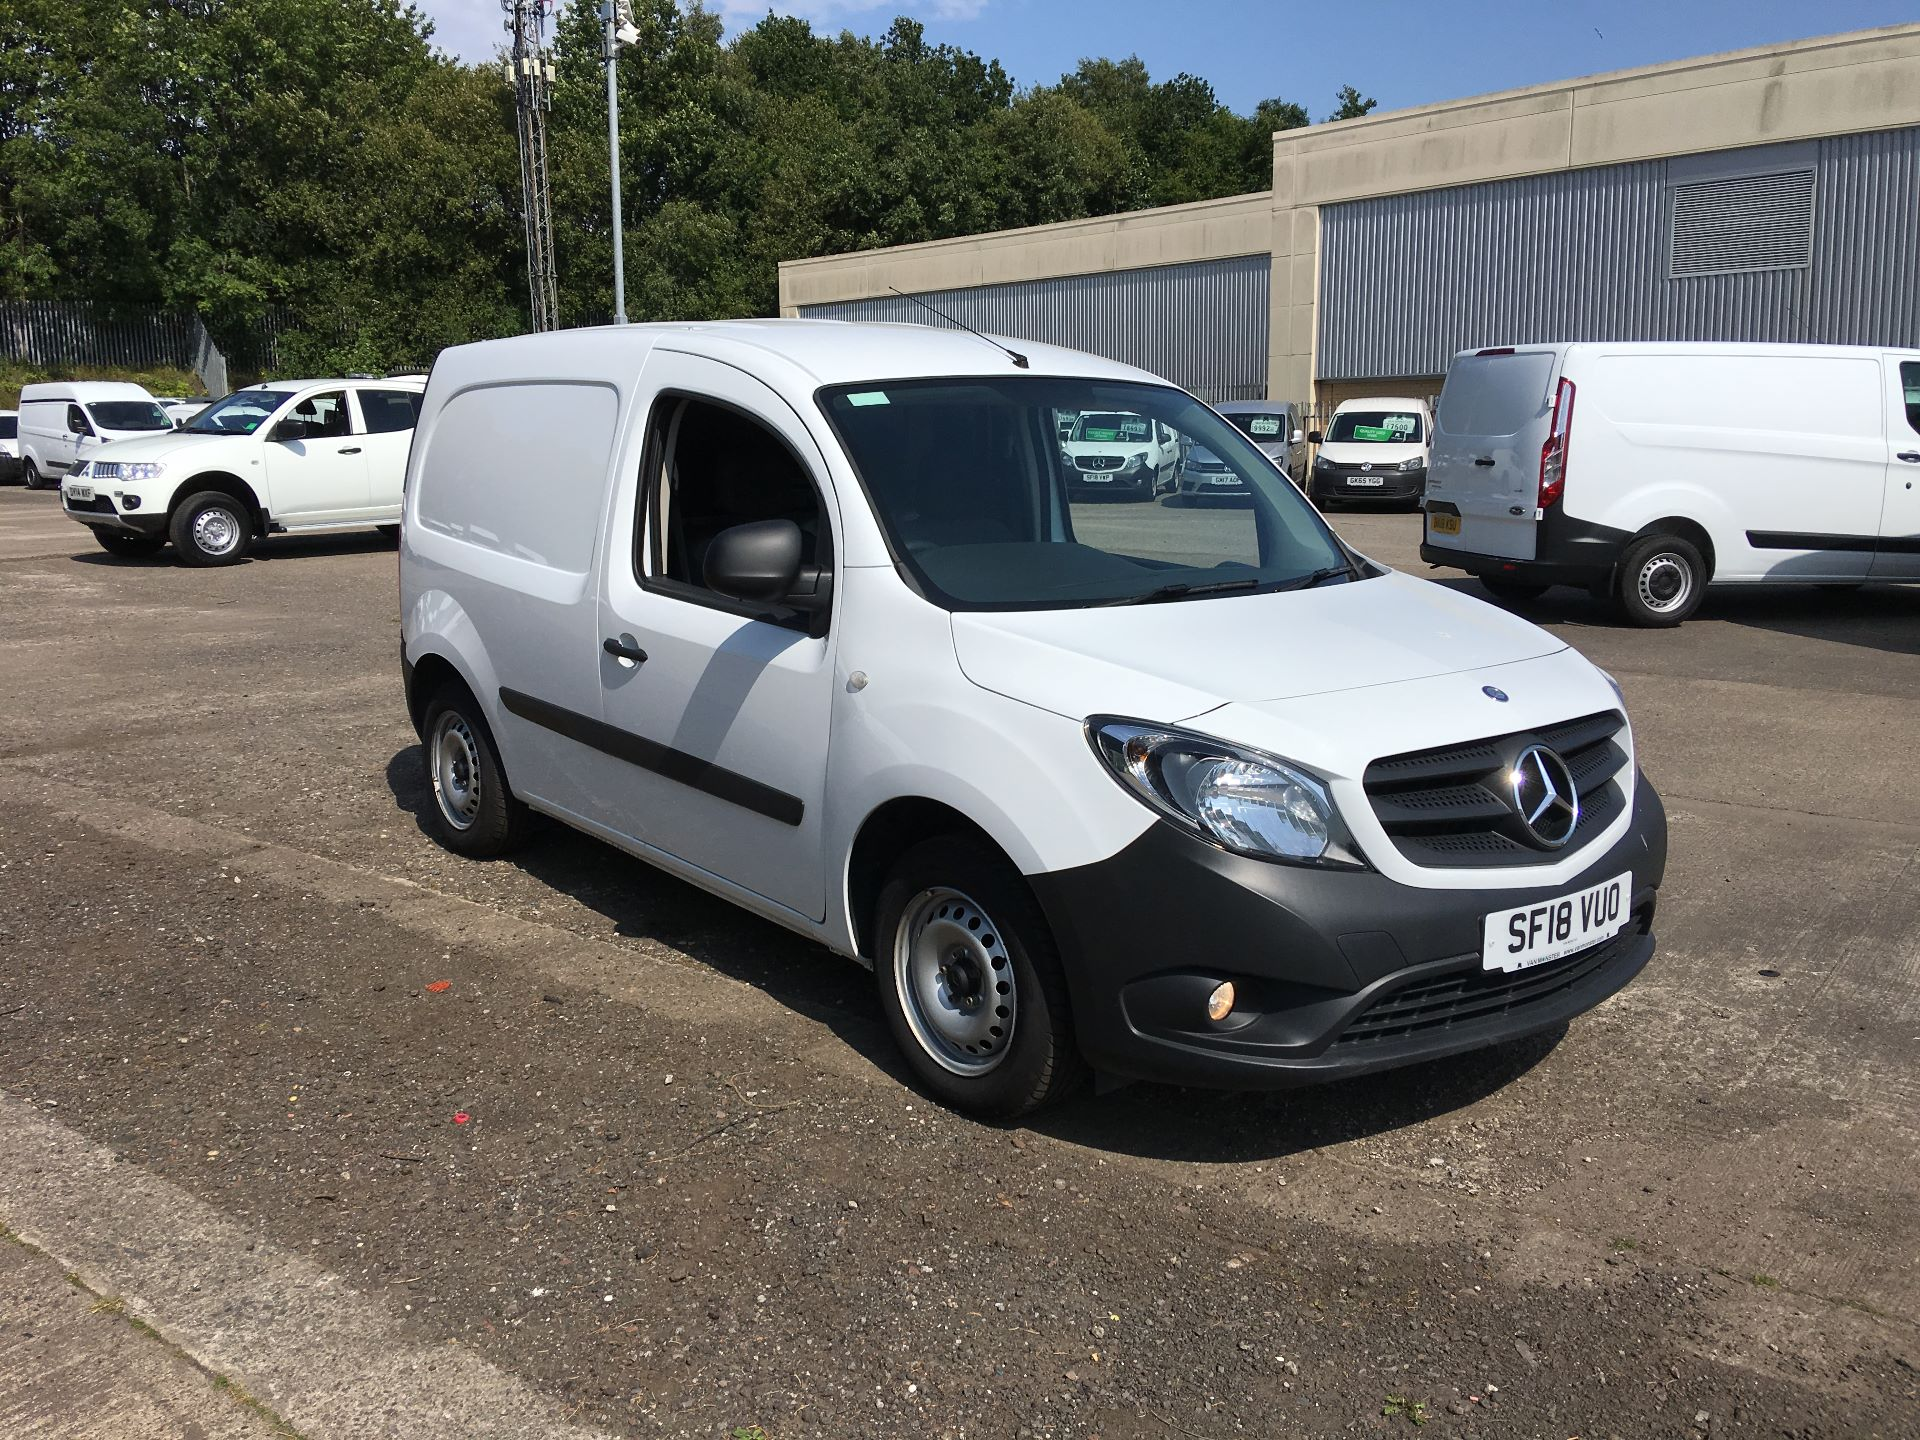 2018 Mercedes-Benz Citan LWB 109 CDI BLUE EFFICIENCY VAN EURO 5/6 (SF18VUO) Image 1